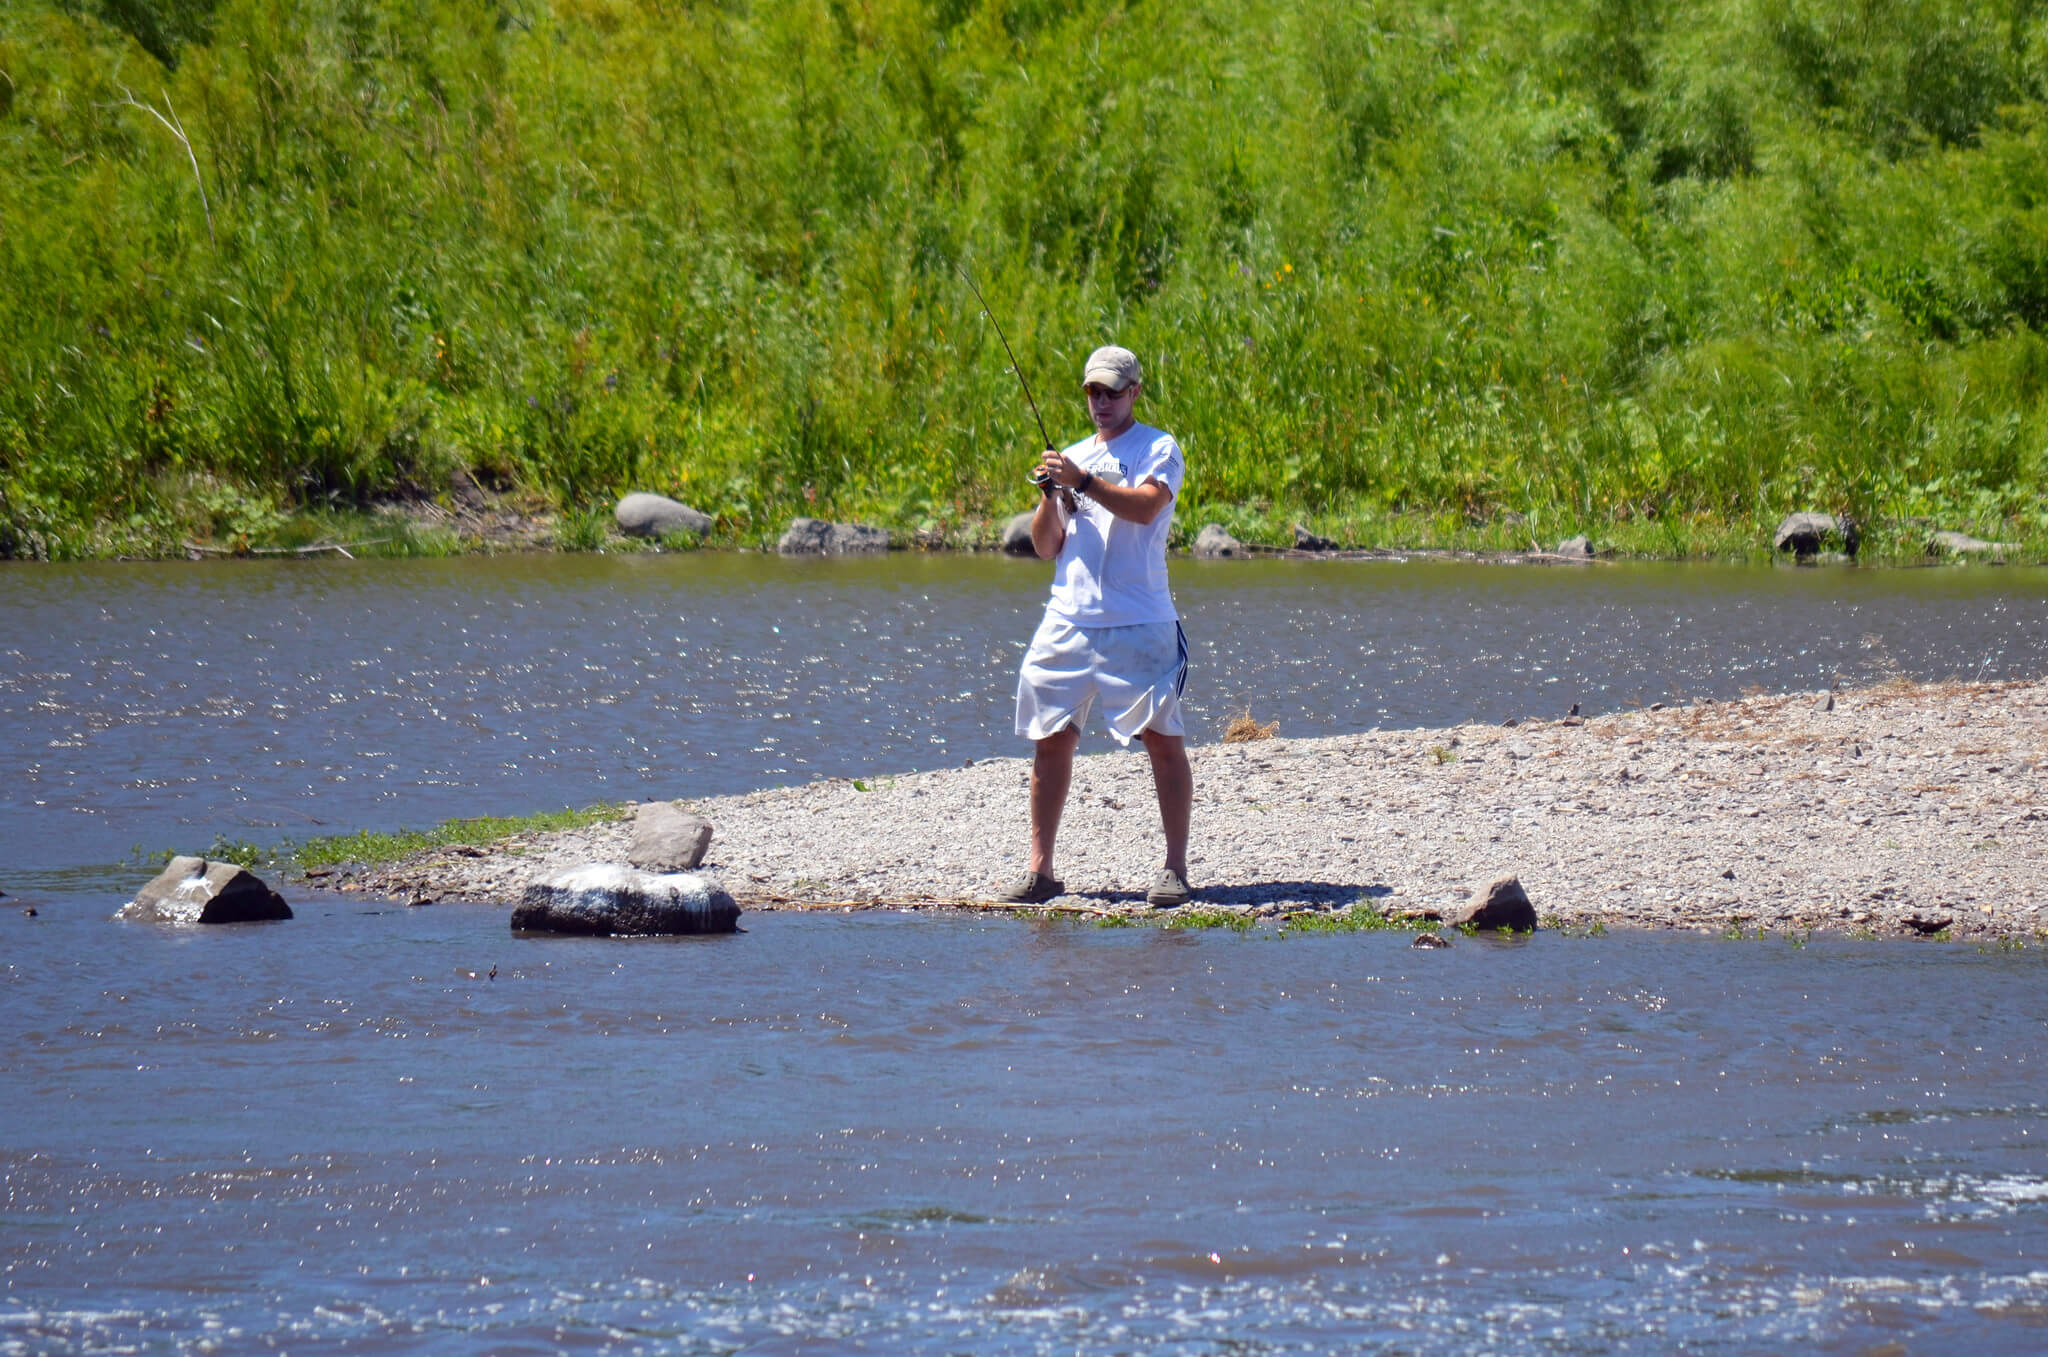 An angler on a lake shoreline. Many similar recreation areas have been protected through the Knowles-Nelson Stewardship Program.